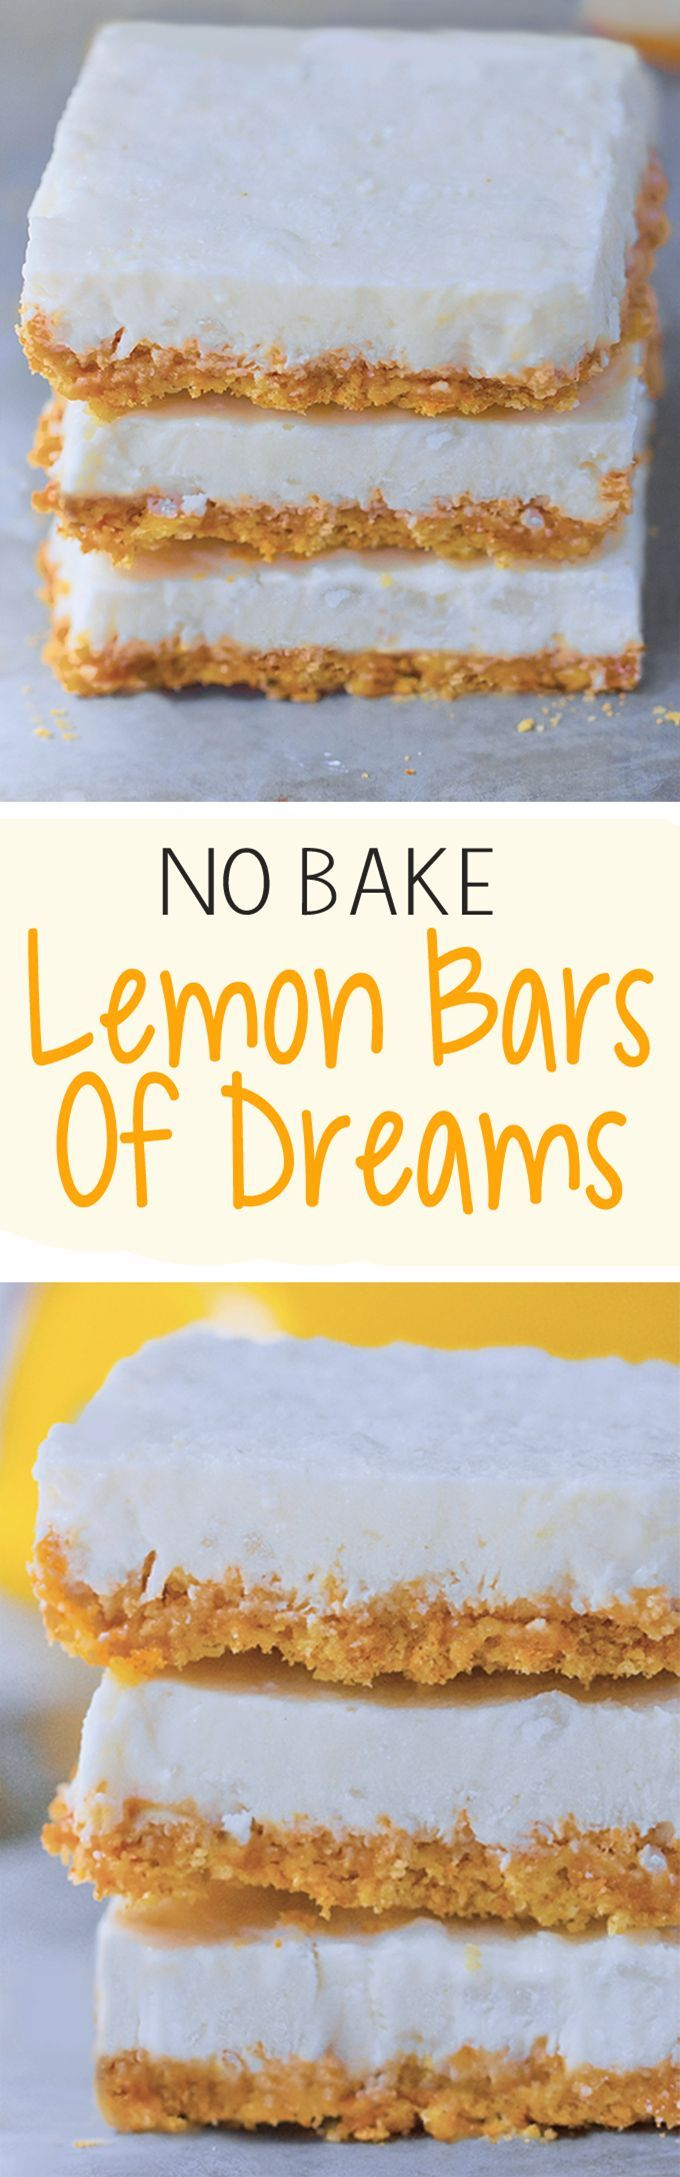 HEALTHY LEMON BARS - Ingredients: 1 tbsp lemon juice, 2 tbsp pure maple syrup, 1 tsp lemon zest, 1/2 cup… Full recipe>> /choccoveredkt/ http://chocolatecoveredkatie.com